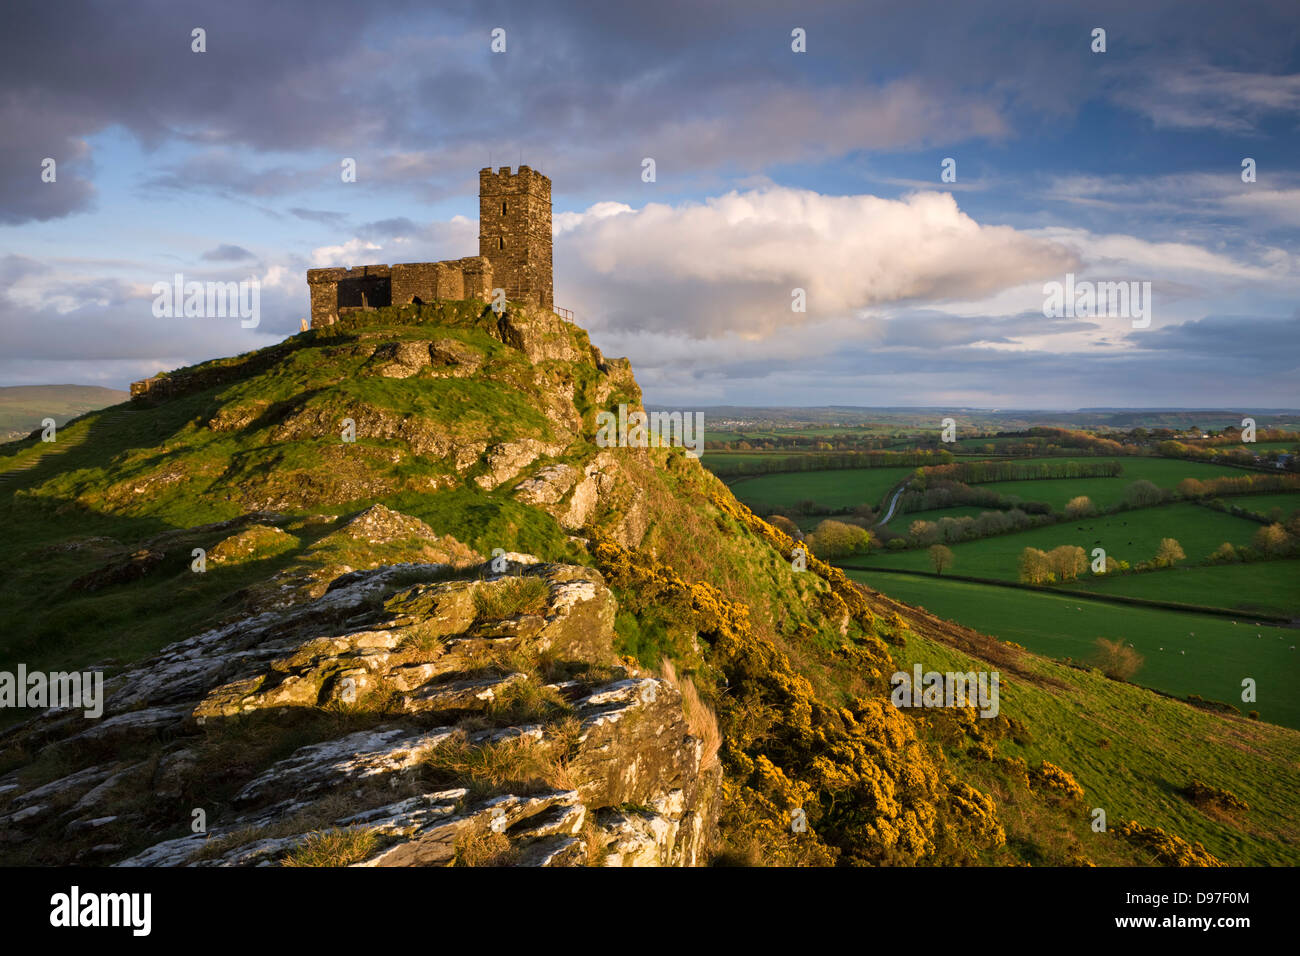 Brentor Church, high on a Dartmoor outcrop, Devon, England. Spring (April) 2009. - Stock Image